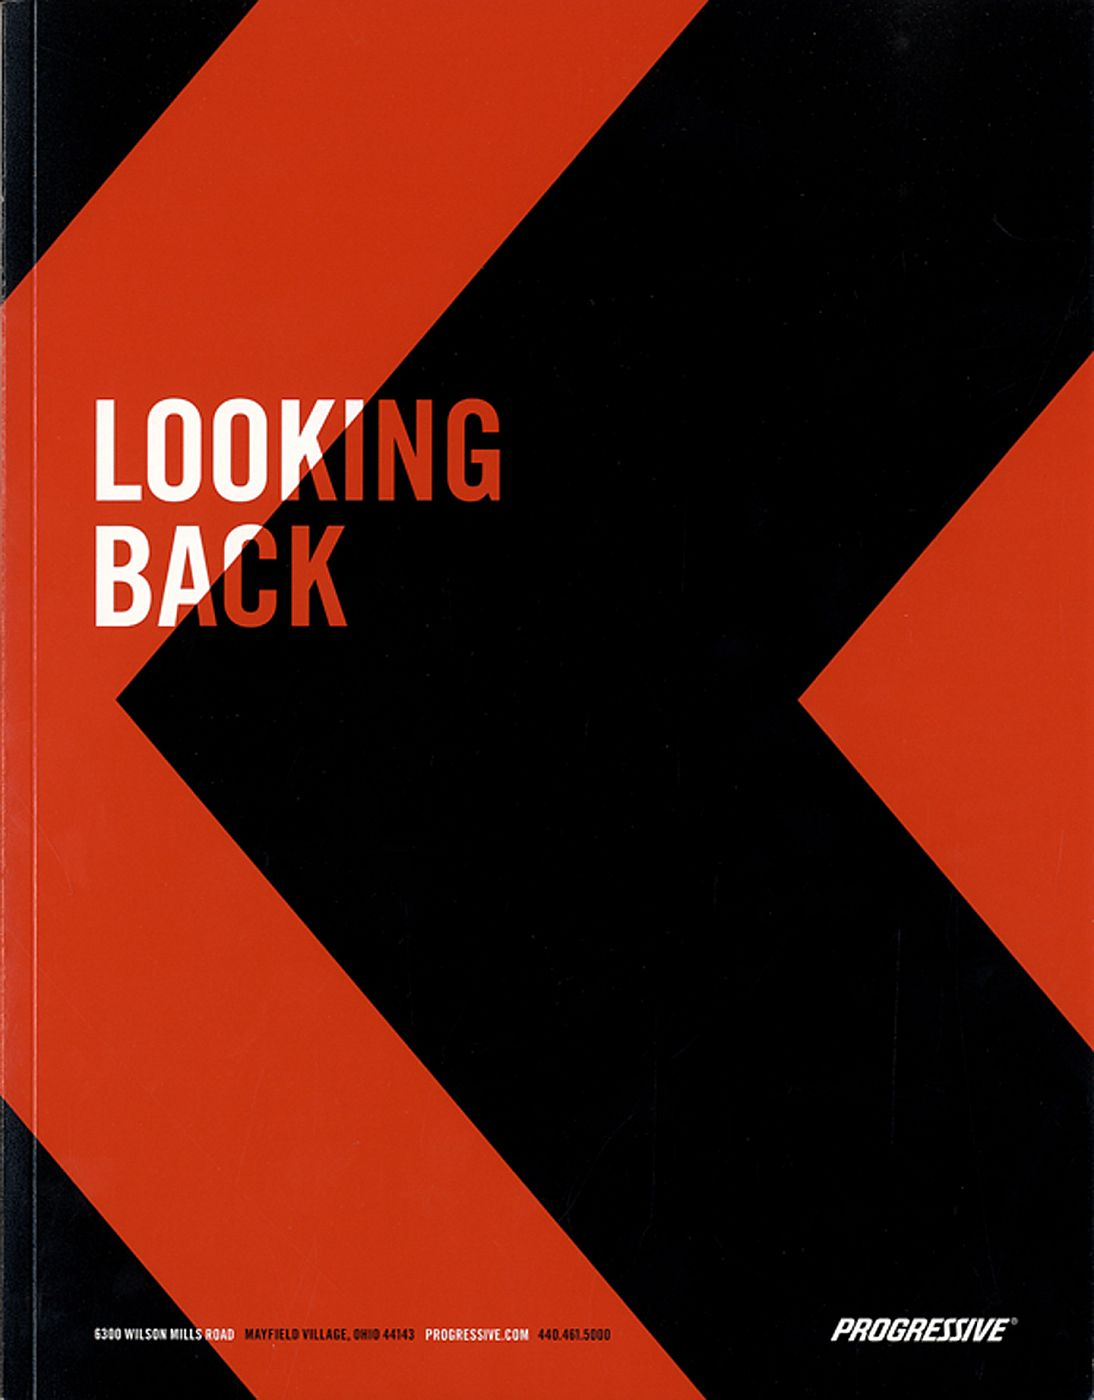 The Progressive Corporation 2014 Annual Report: Destination Ahead, Looking Back: Photographs by Lee Friedlander [SIGNED]